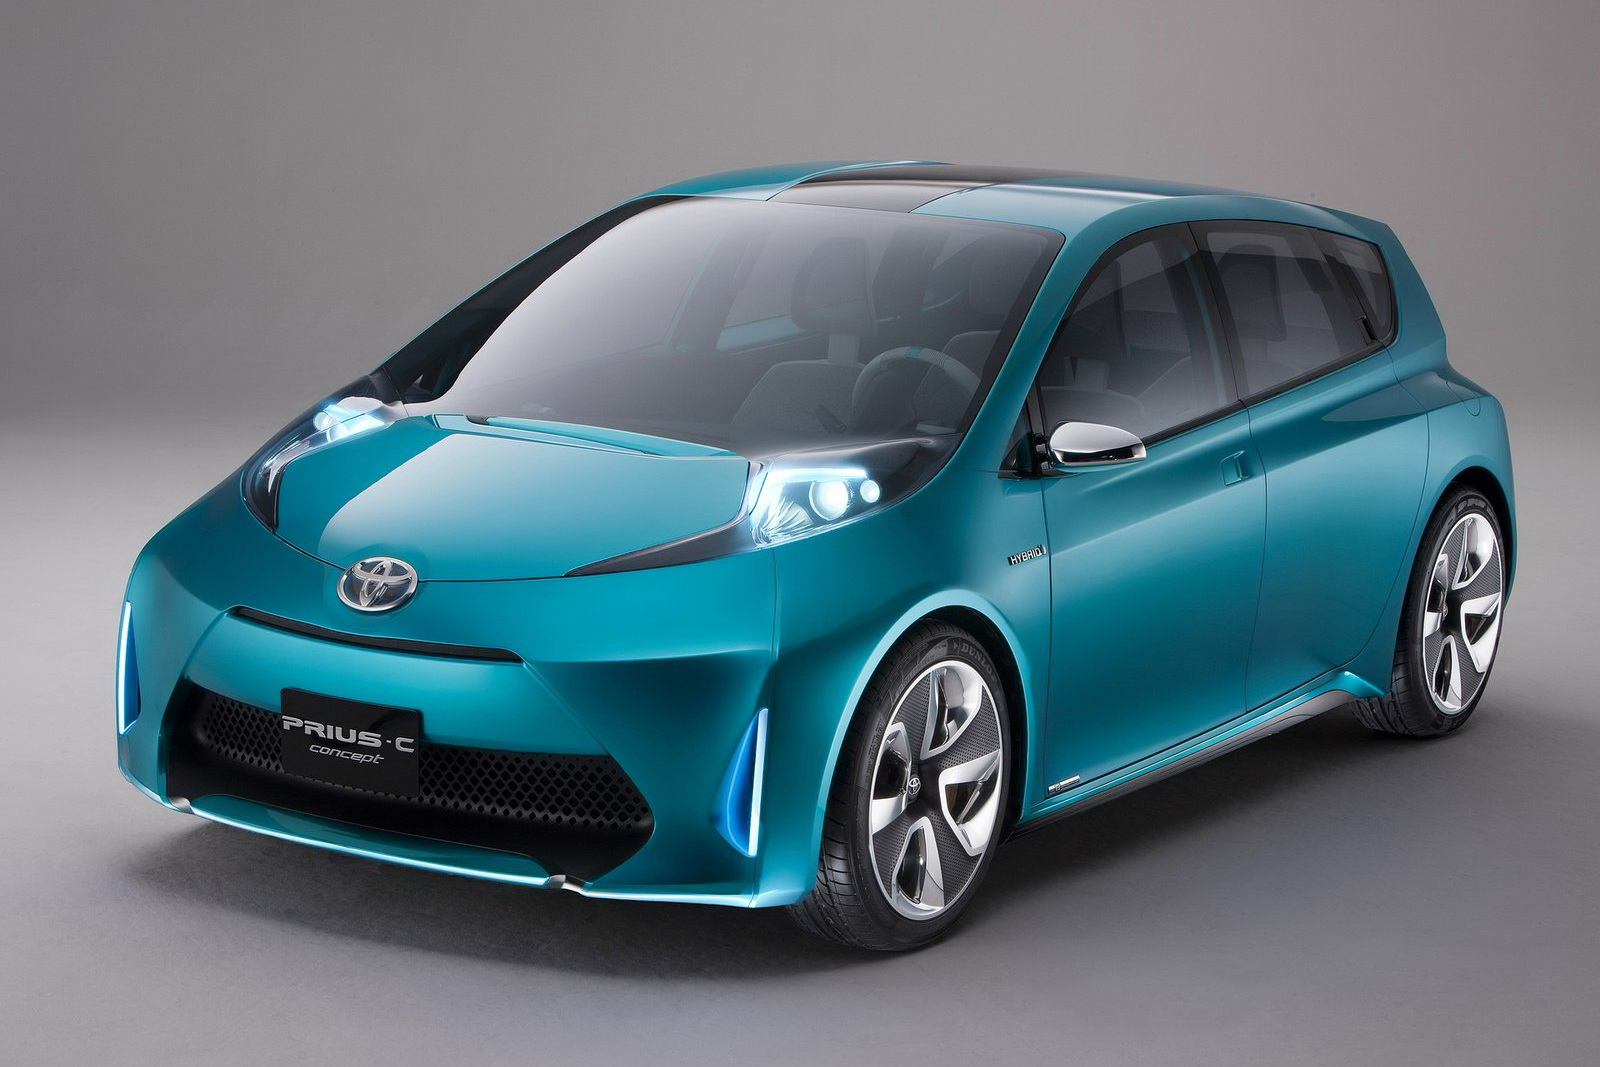 2017 toyota prius c hybrid photo new suv price new suv. Black Bedroom Furniture Sets. Home Design Ideas